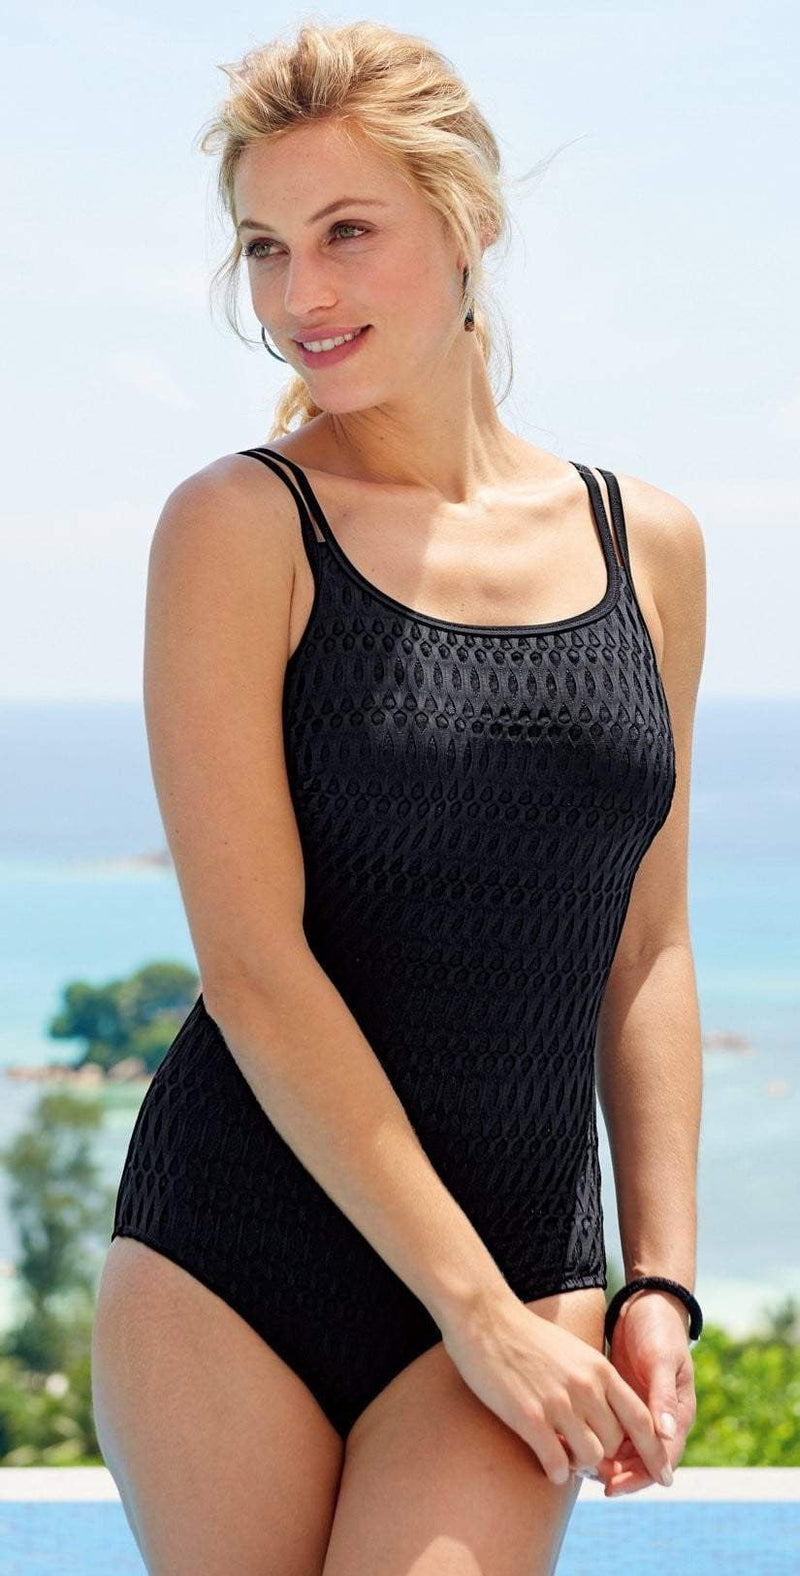 Anita Care Venedig Mastectomy One Piece Swimsuit in Black 6206-001: